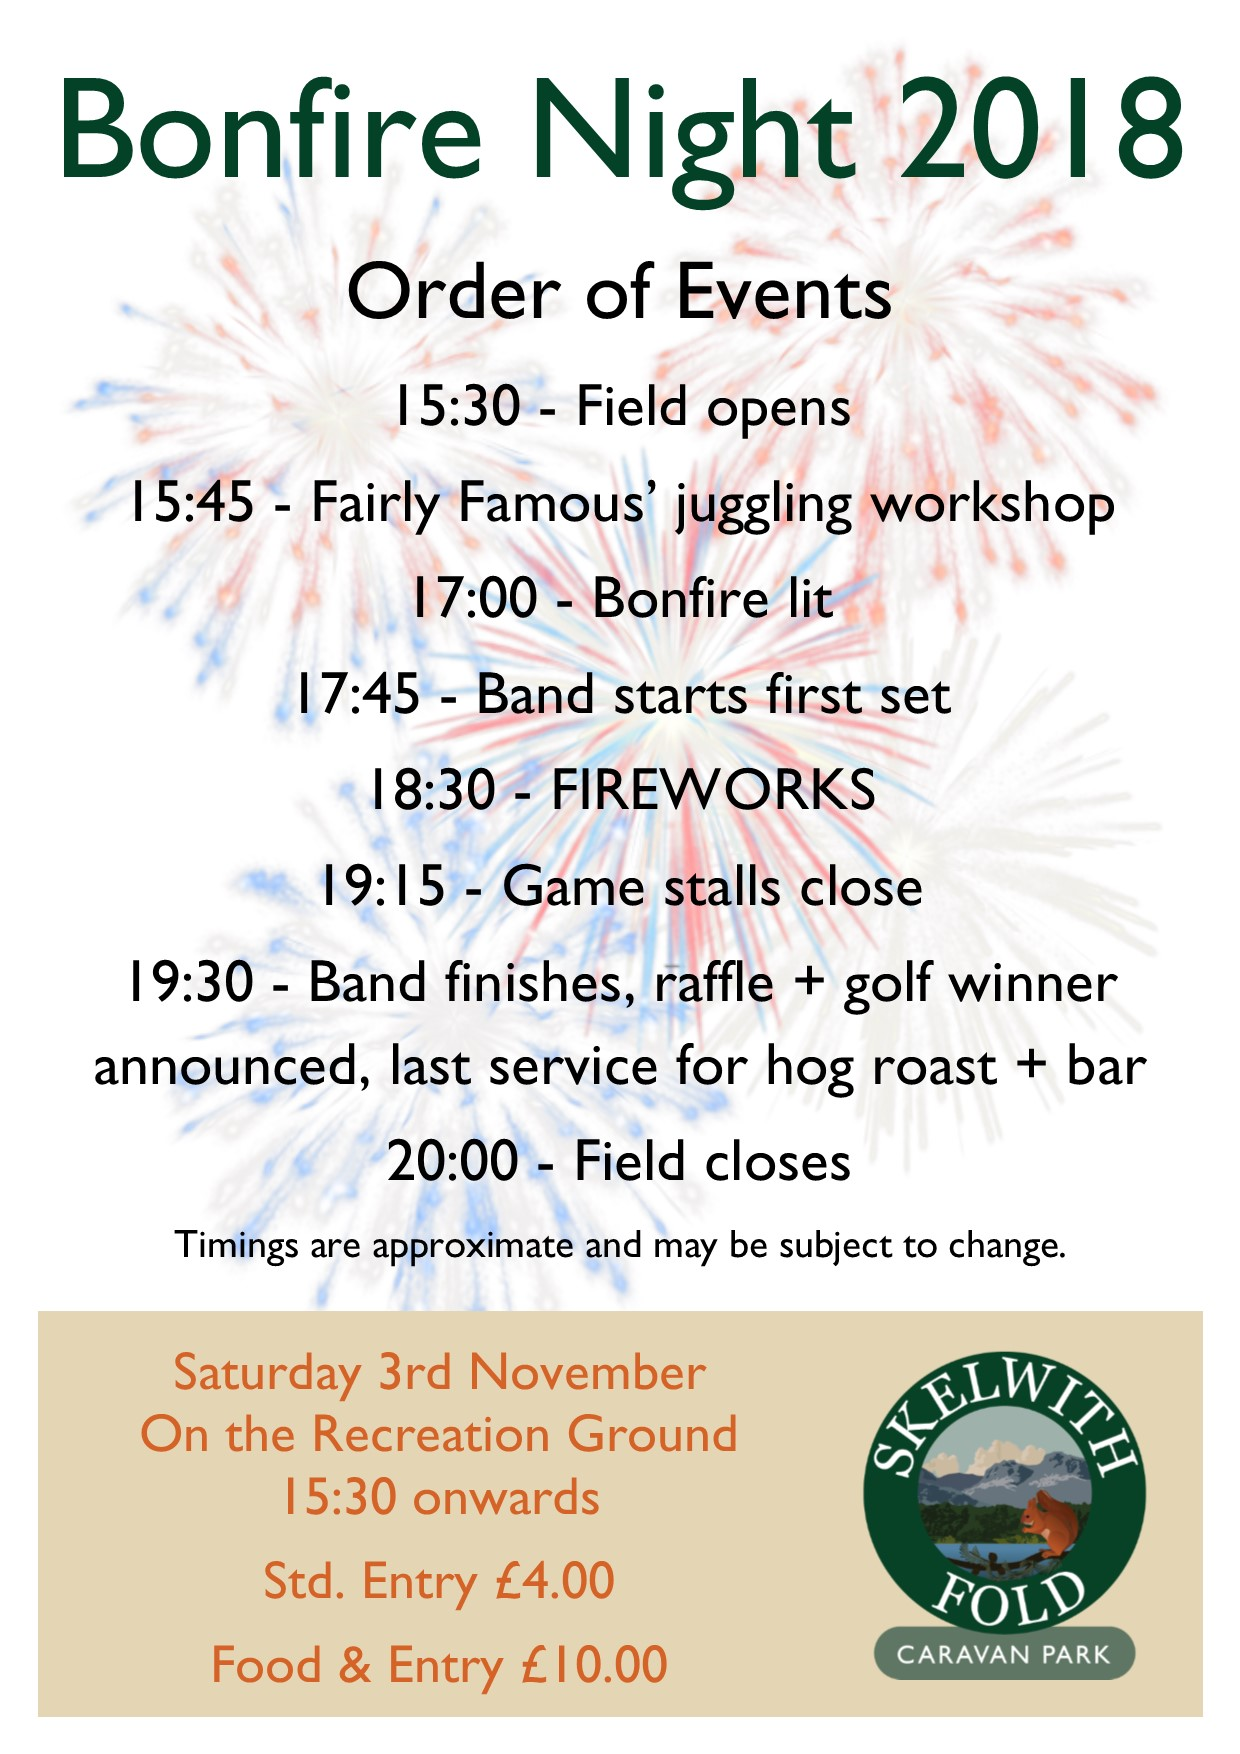 Bonfire Night 2018 Order of Events